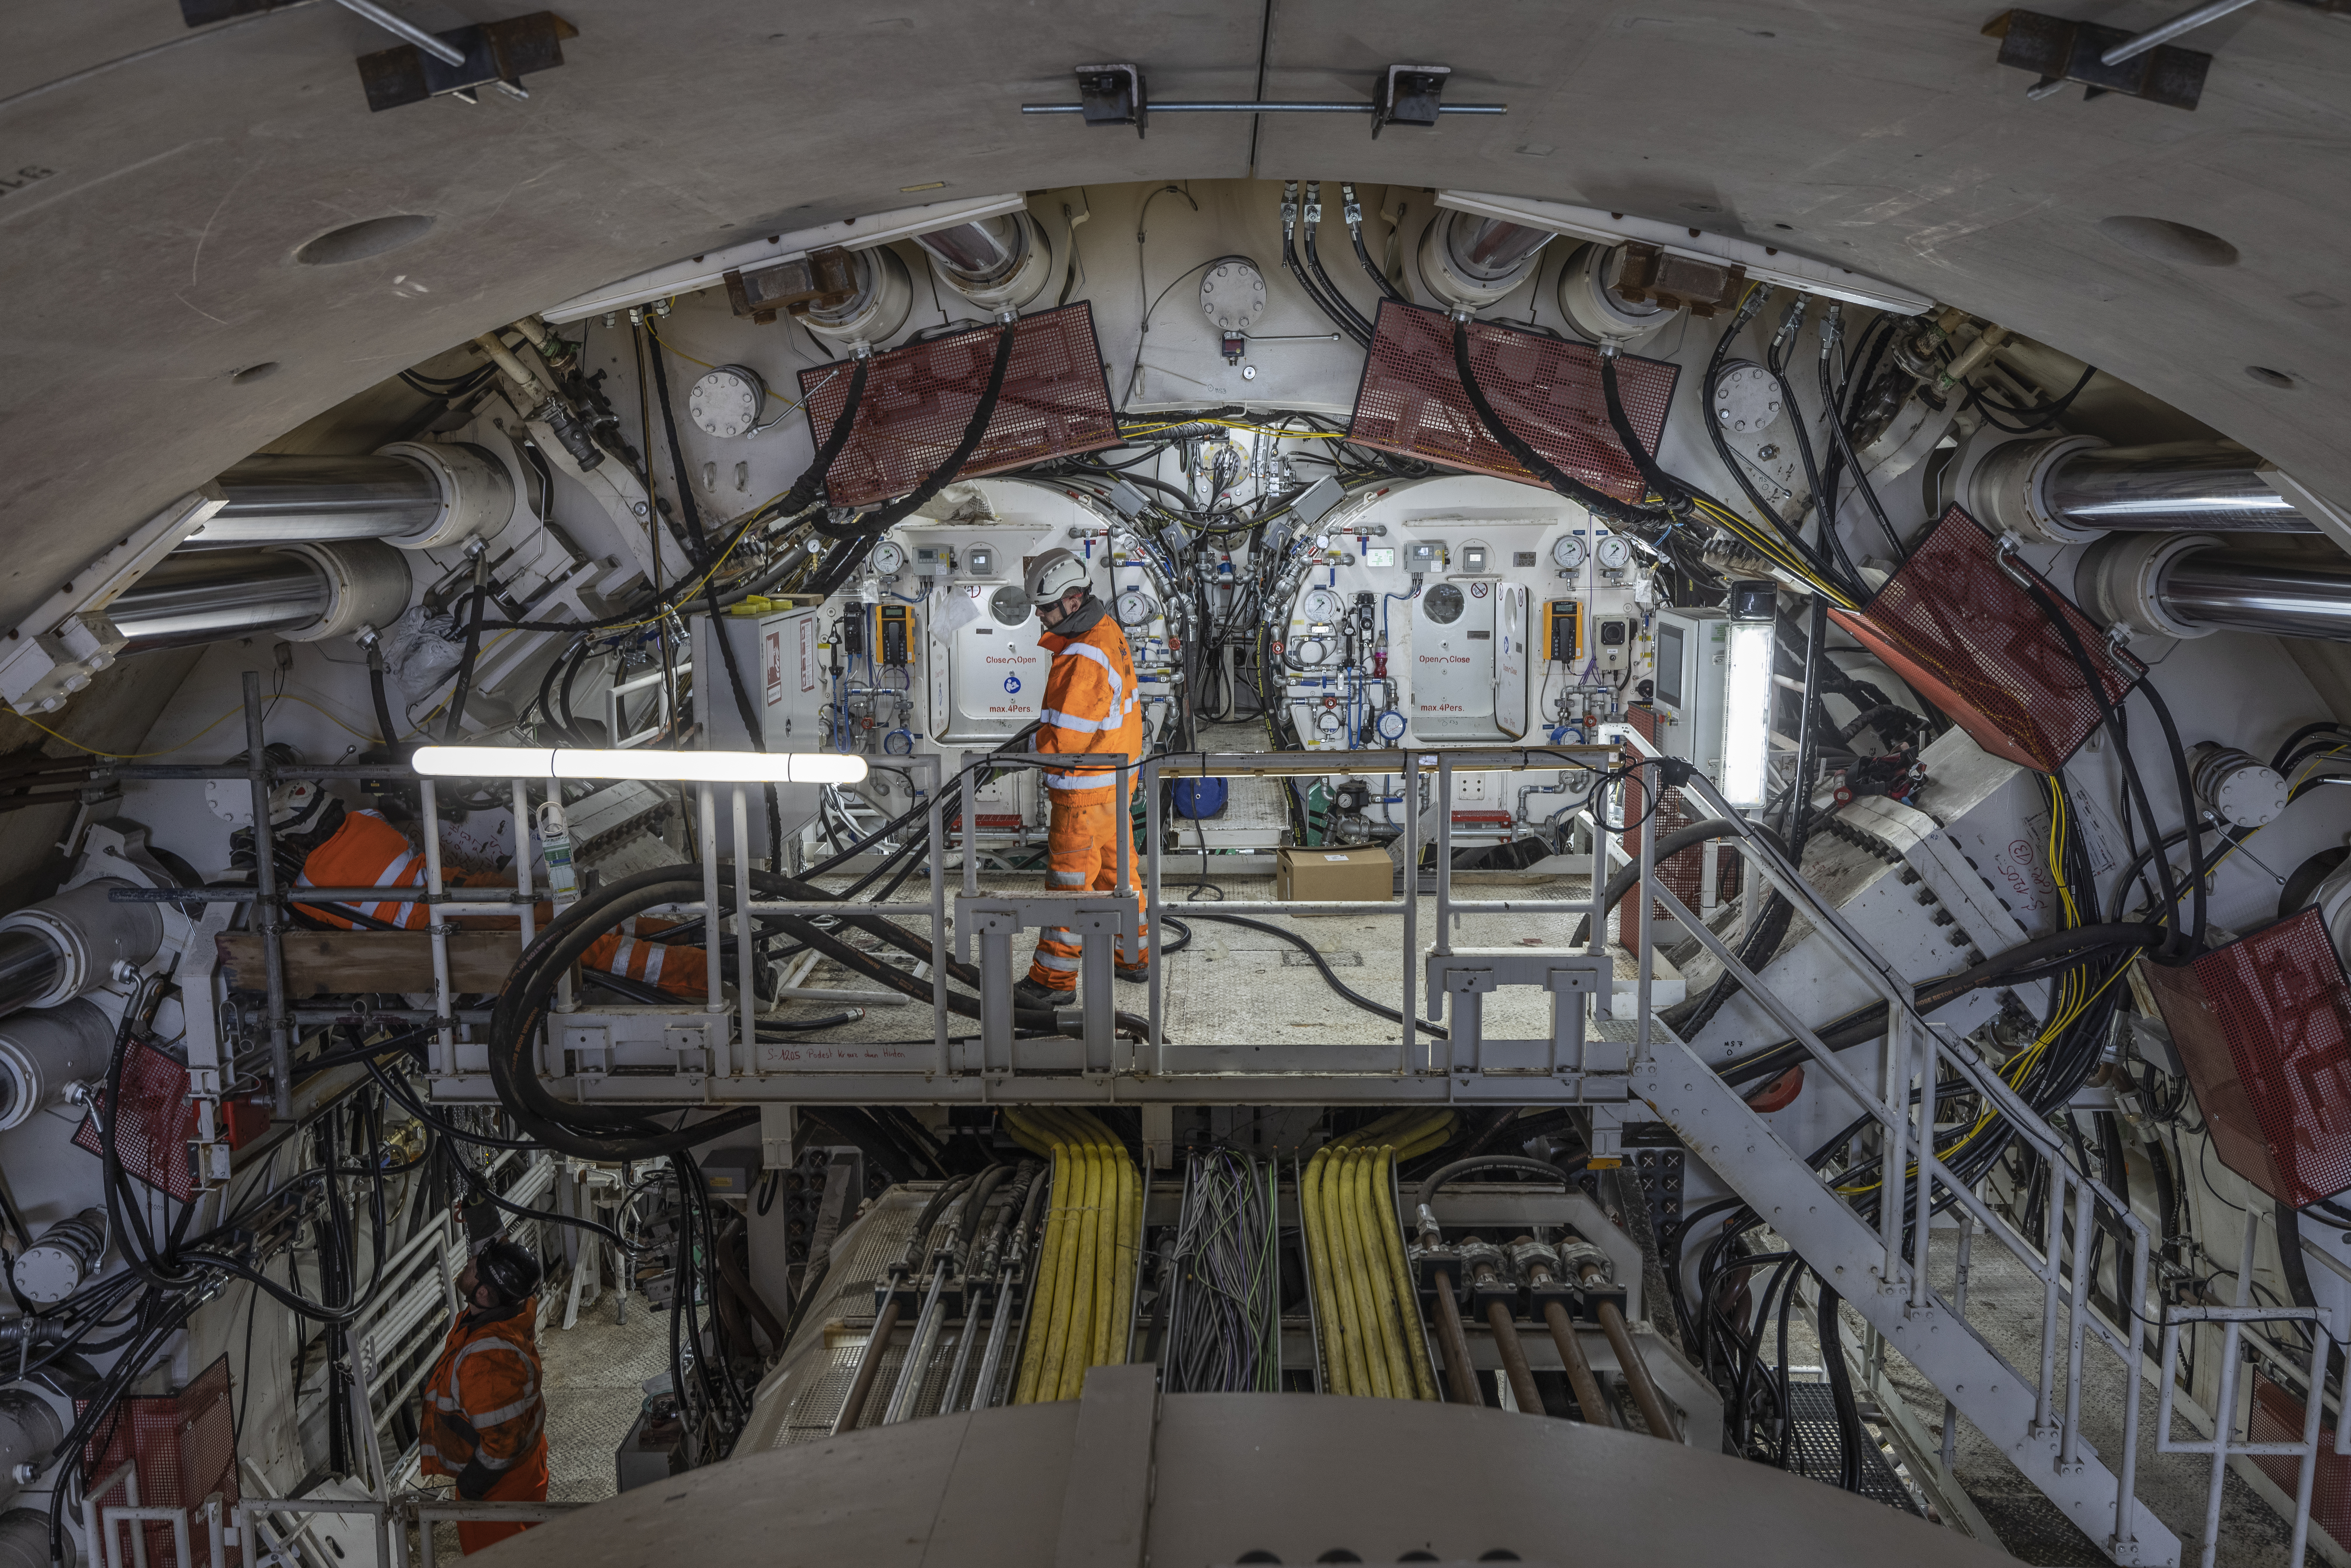 <p>RICKMANSWORTH, ENGLAND - MAY 13: HS2 unveil their new tunnel boring machine, (TBM) on May 13, 2021 in Rickmansworth, England. The 2000 tonne machine named Florence after Florence Nightingale started its 10 mile-long tunnel dig under the Chilterns today, and will be operating 24/7 for the next three years. (Photo by Dan Kitwood/Getty Images)</p>